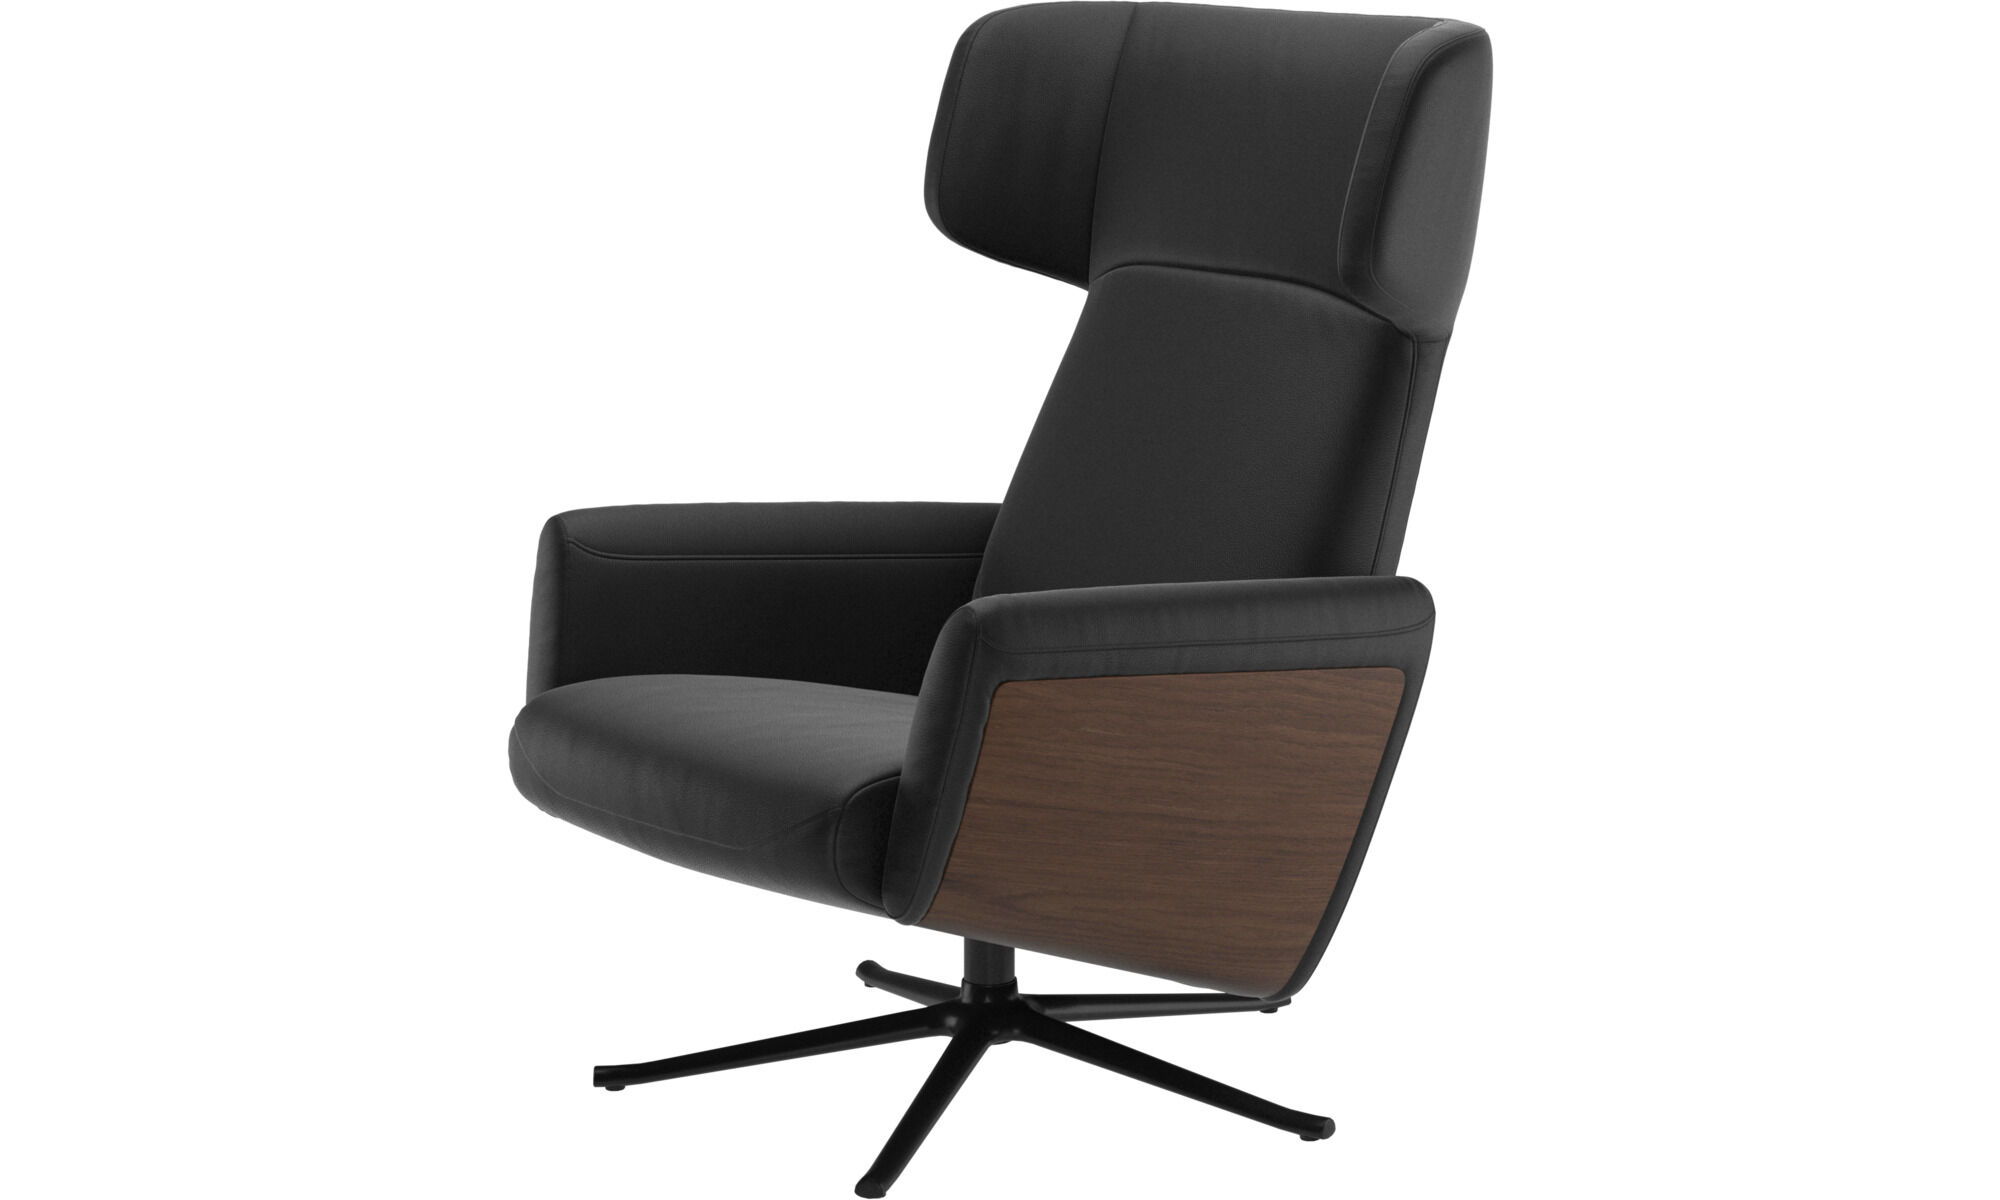 Lucca Wing Recliner With Swivel Function. Available October.